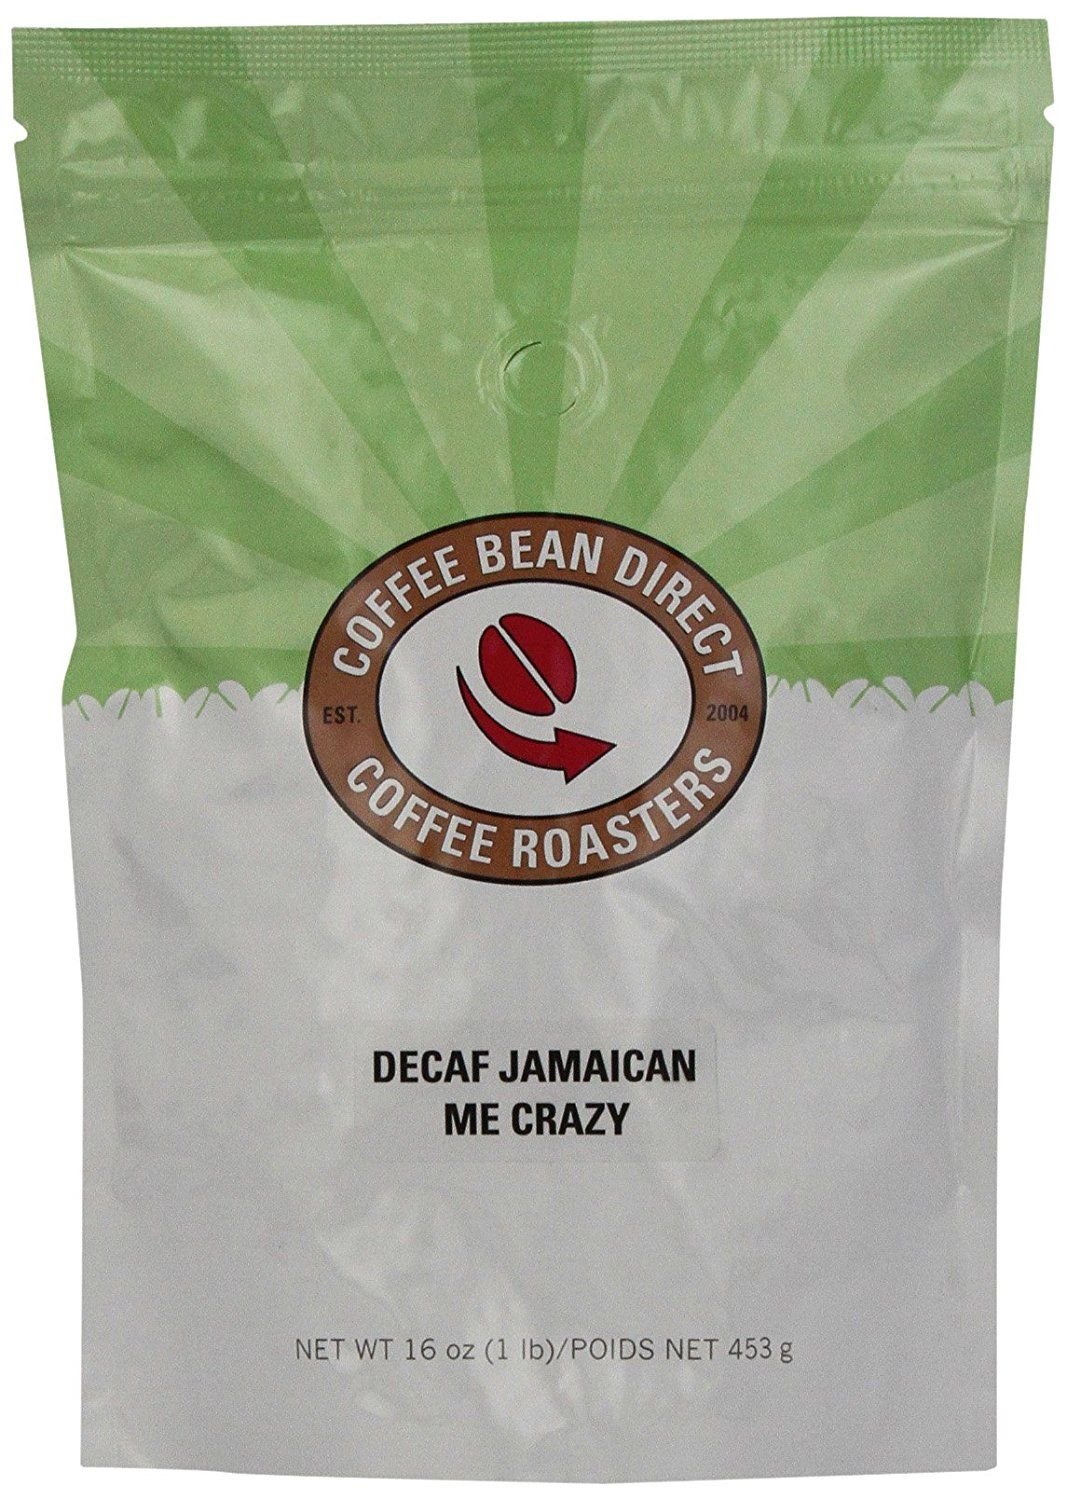 Coffee bean direct decaf jamaican me crazy flavored whole